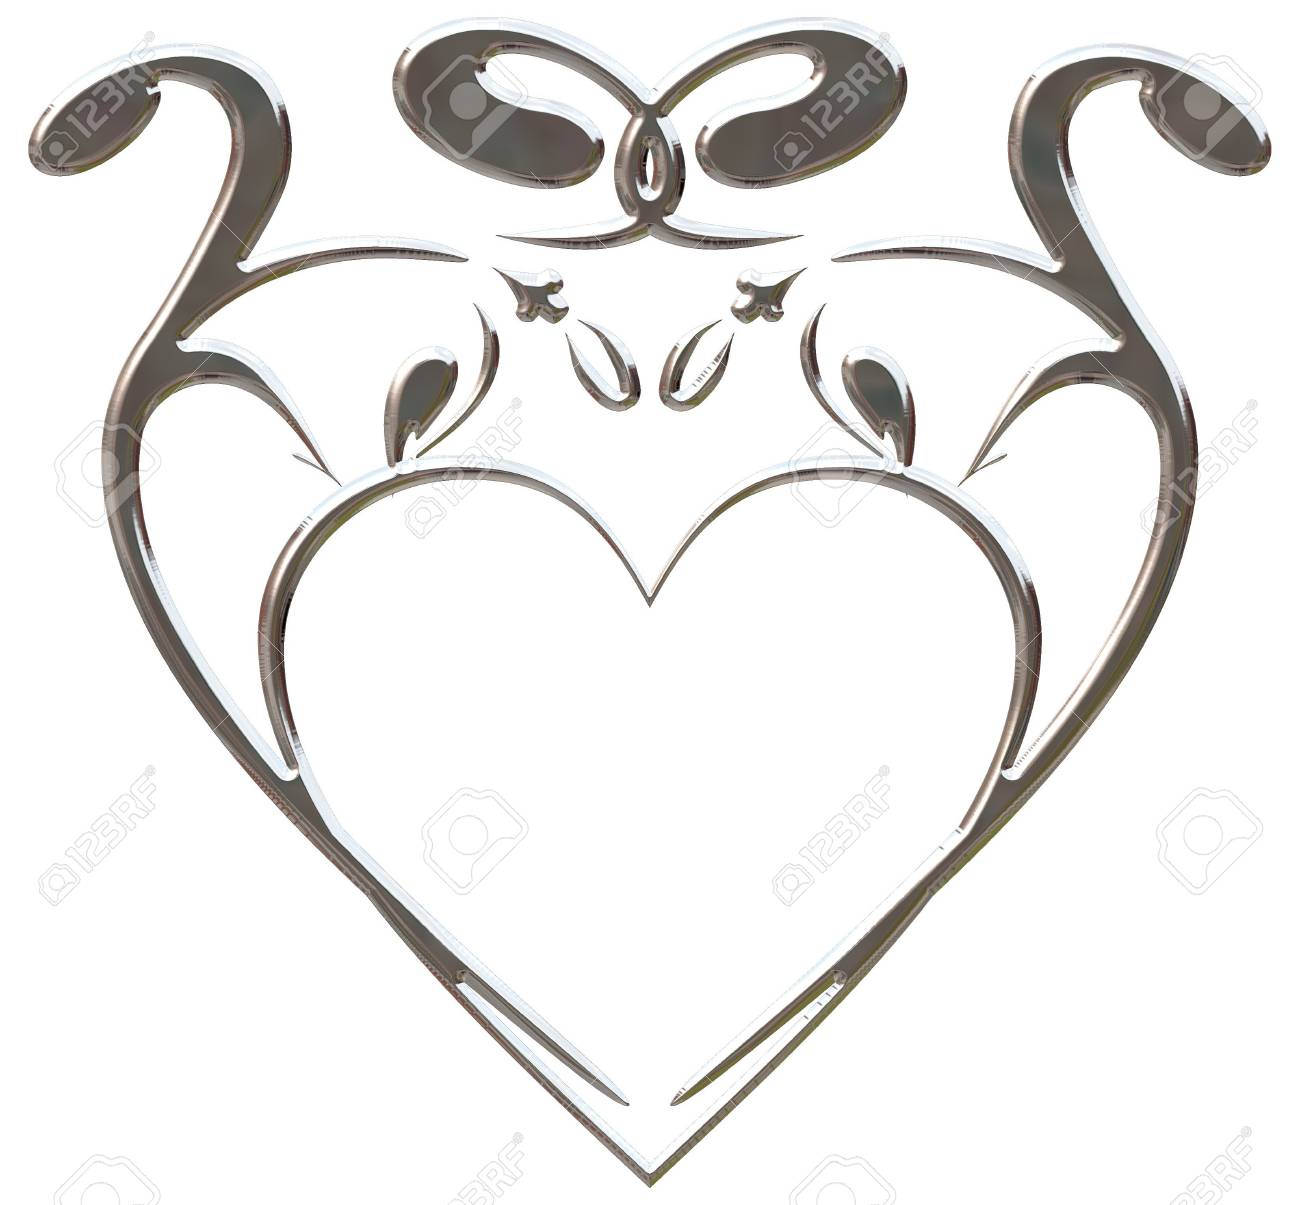 Illustration of isolated nature heart frame with metal finish, paths included in file. Stock Photo - 2300975